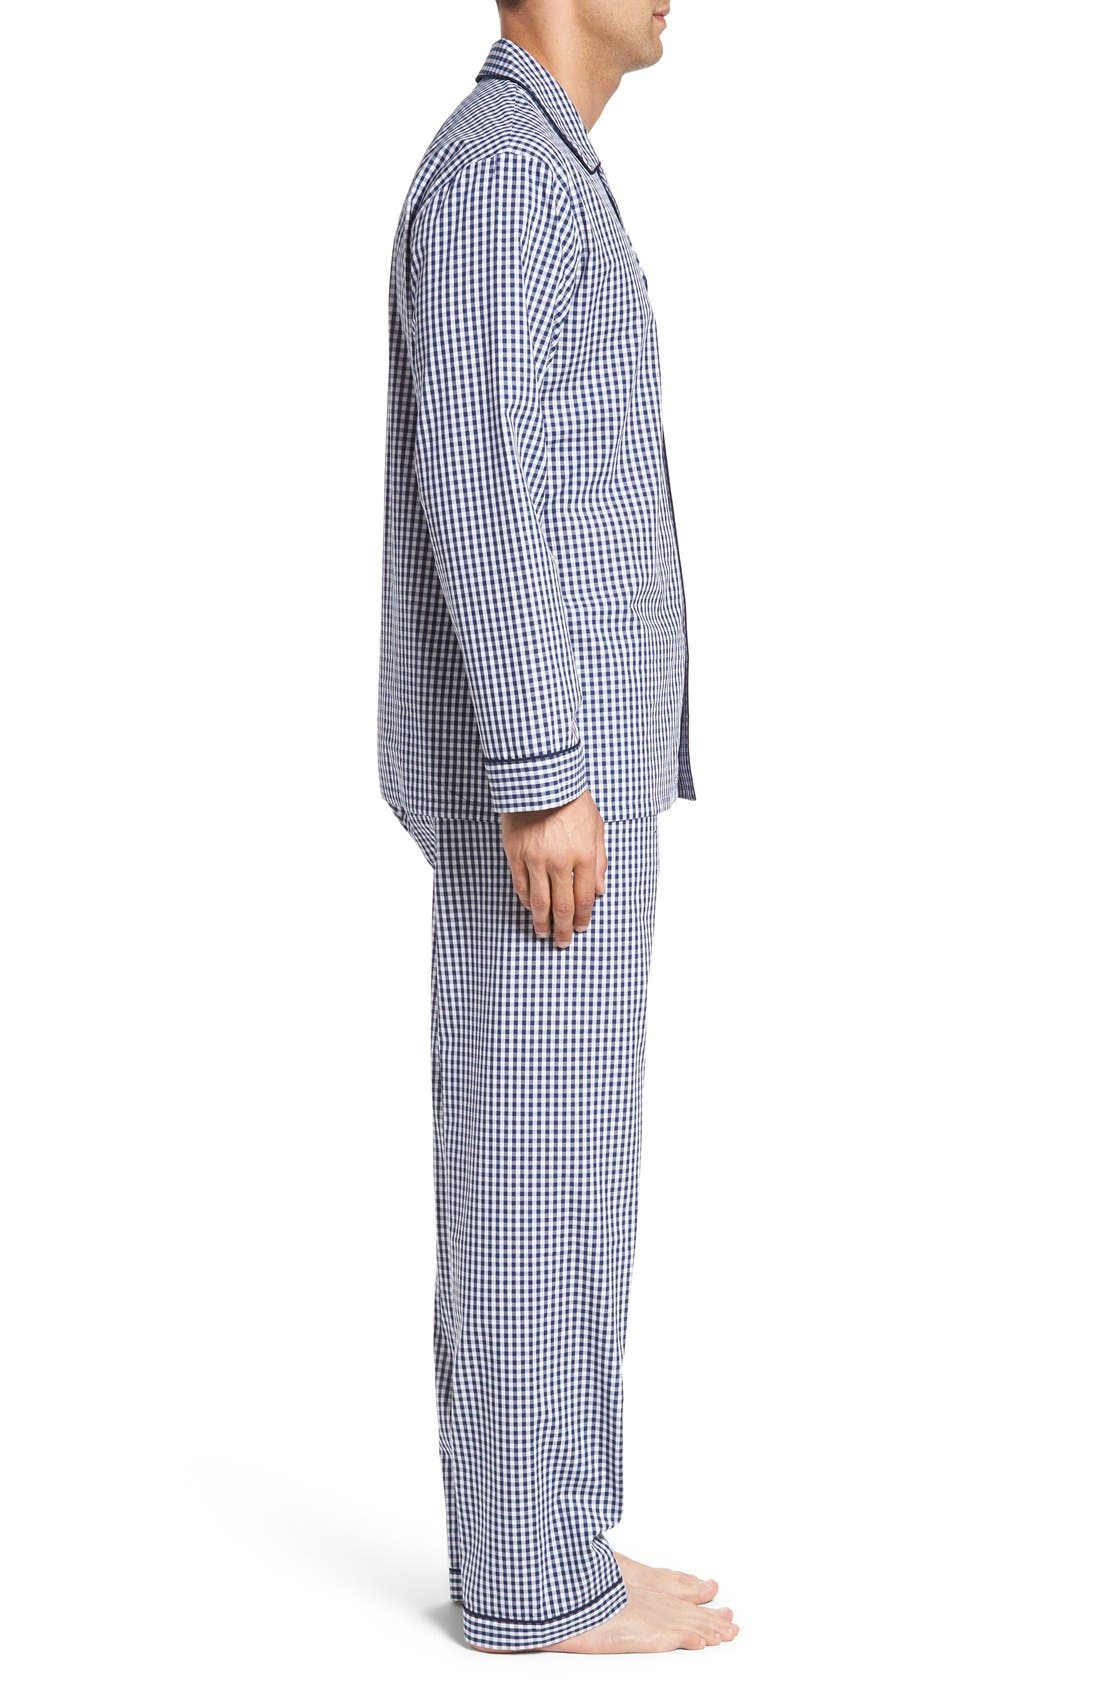 'Hot & Cold' Pajamas,                             Alternate thumbnail 3, color,                             Blue Gingham